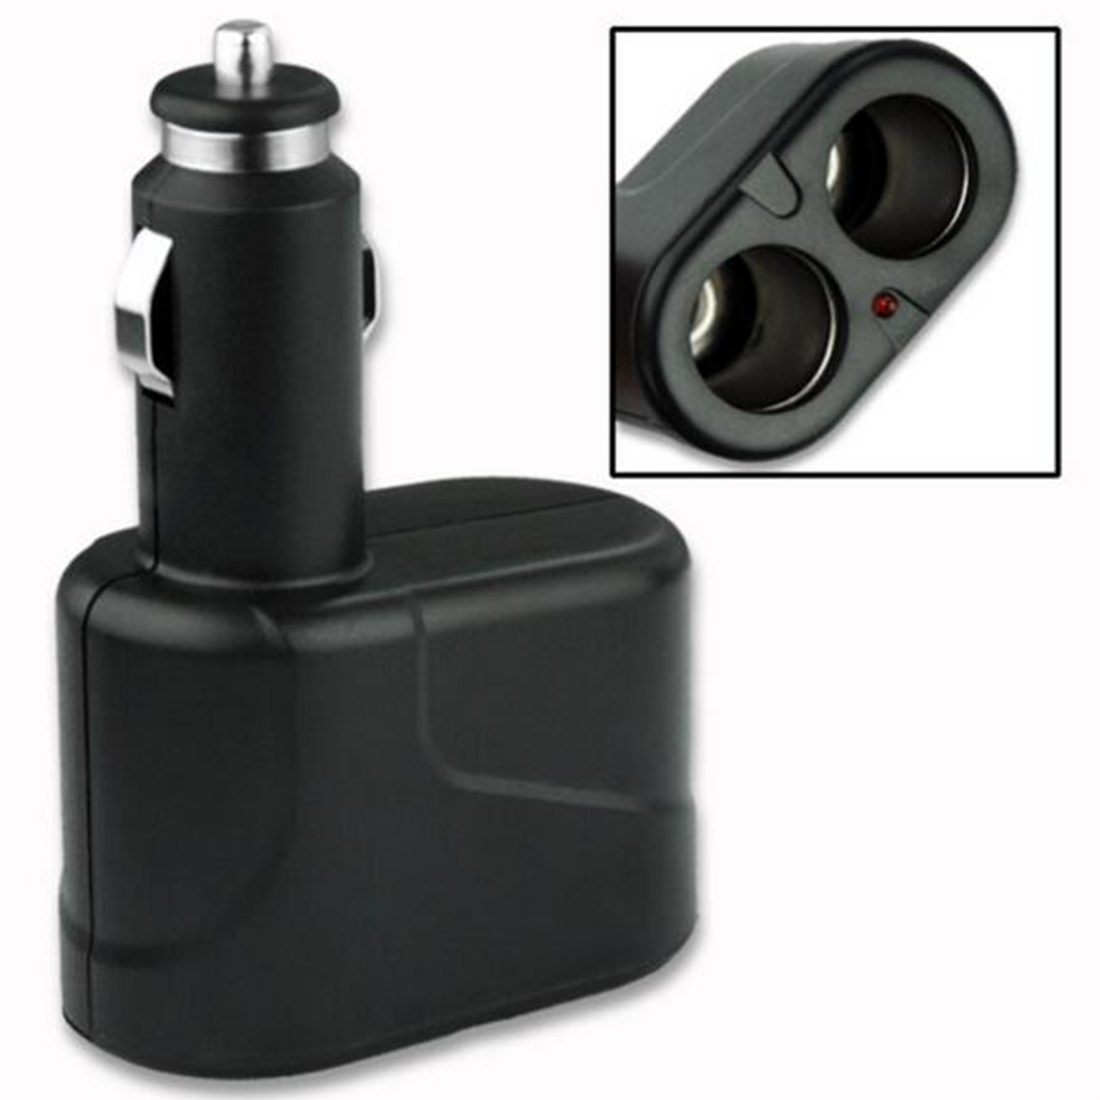 Dewtreetali Cigarette Lighter Double Power Adapter Splitter Socket High Quality Car Accessories 2 Way DC 12V Car Charger